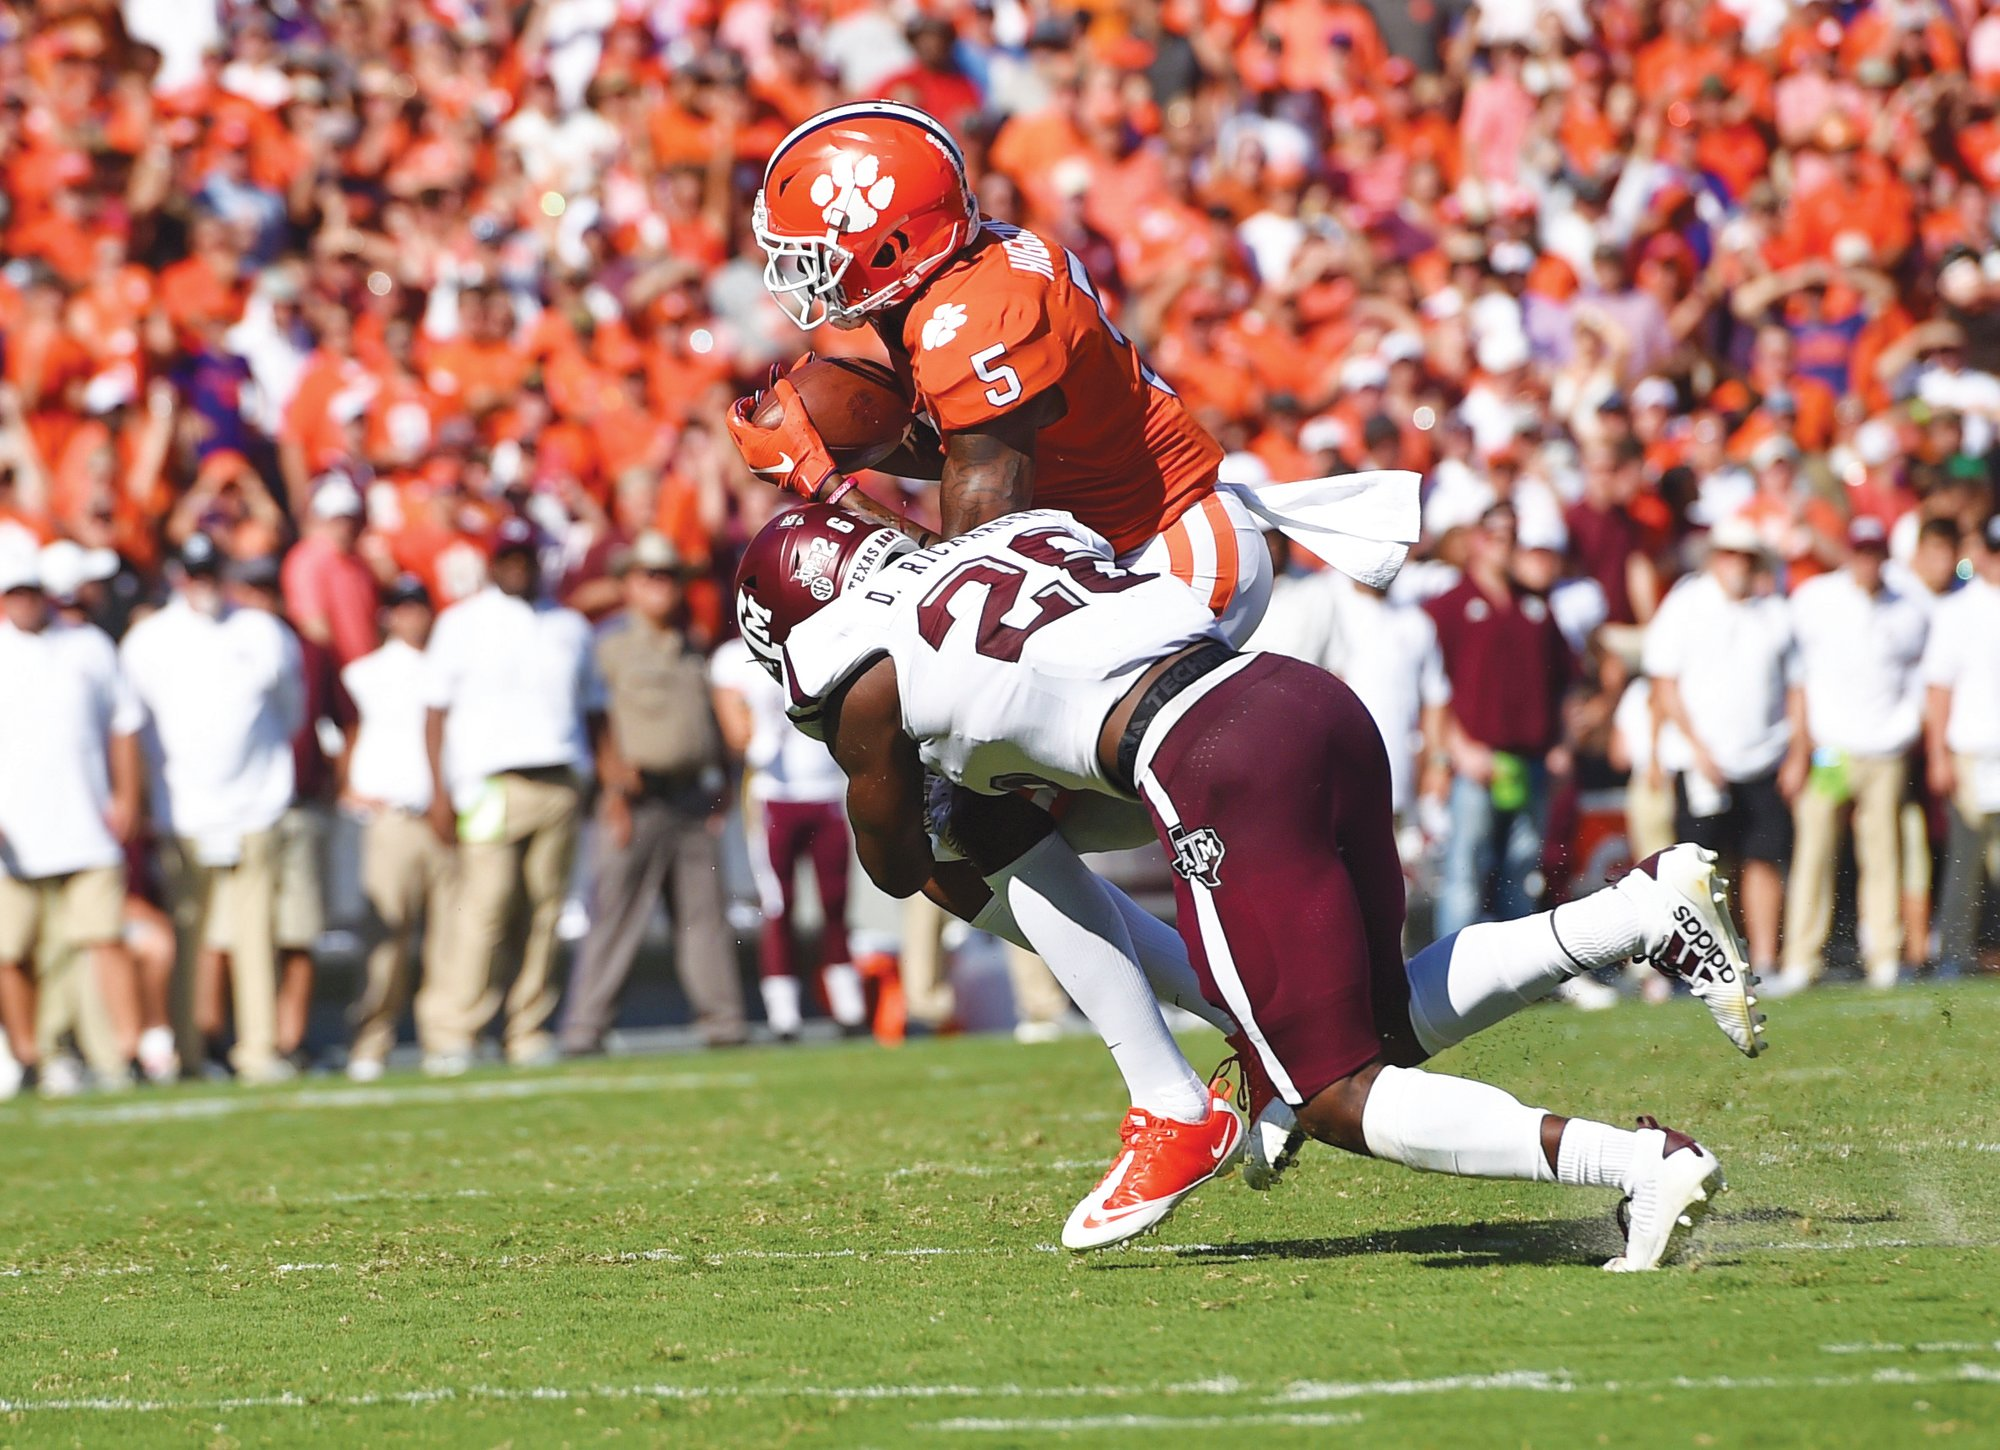 THE ASSOCIATED PRESSClemson wide receiver Tee Higgins (5) catches a pass in the Tigers' 24-10 win over Texas A&M last week. The top-ranked Tigers play at Syracuse on Saturday.